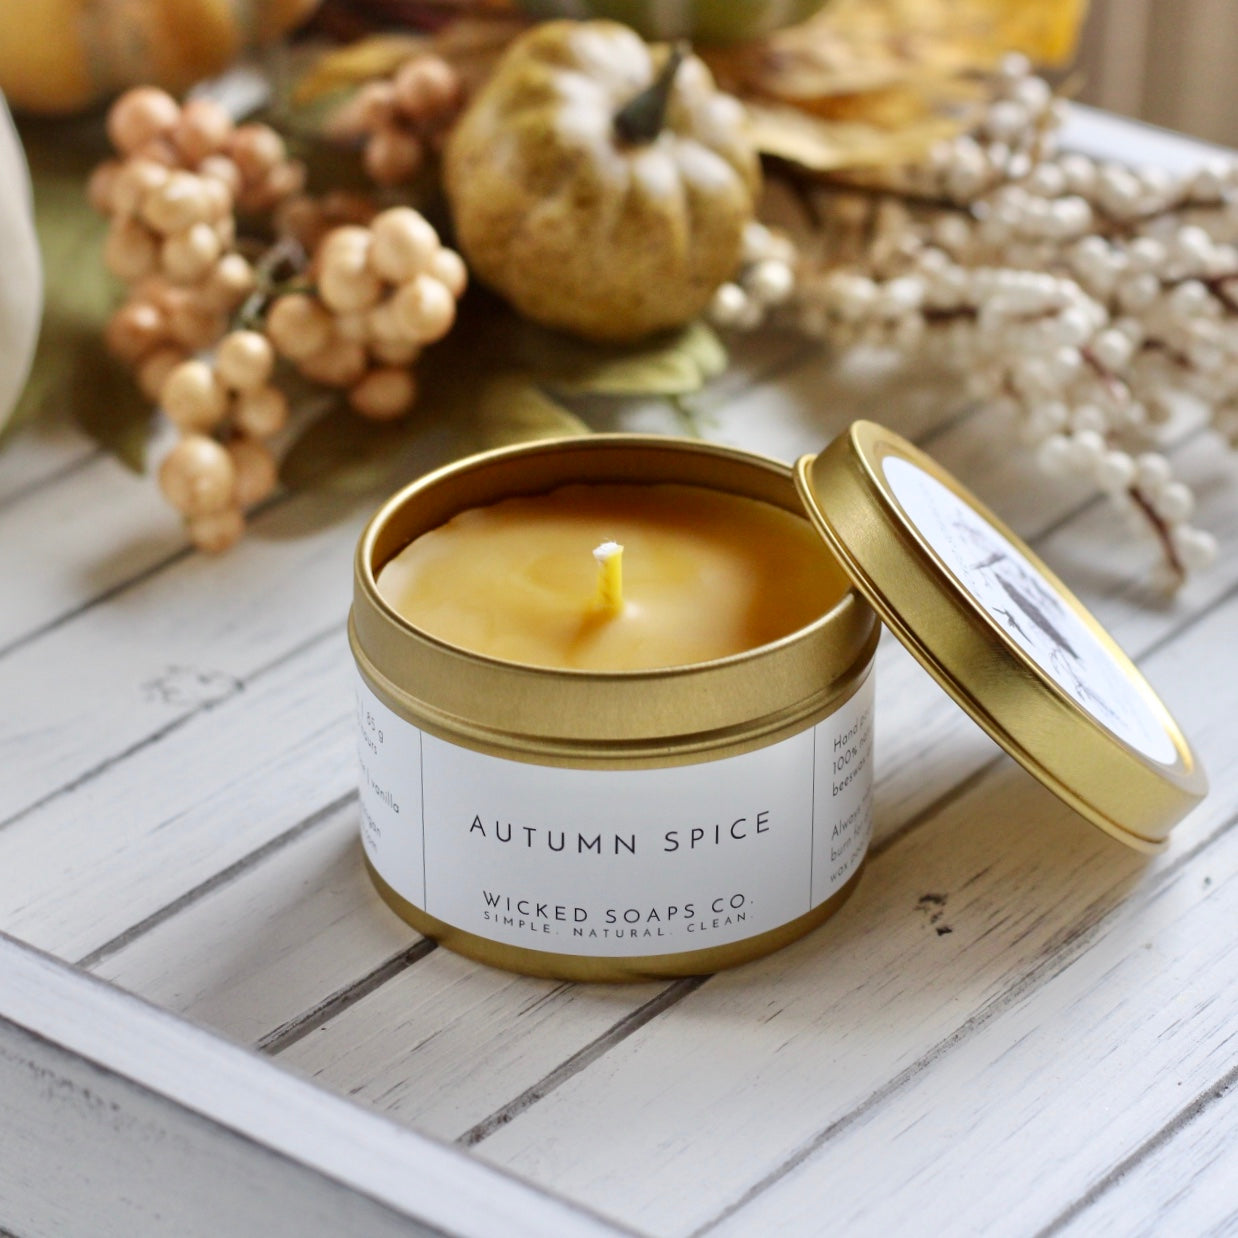 Autumn Spice Beeswax Candle